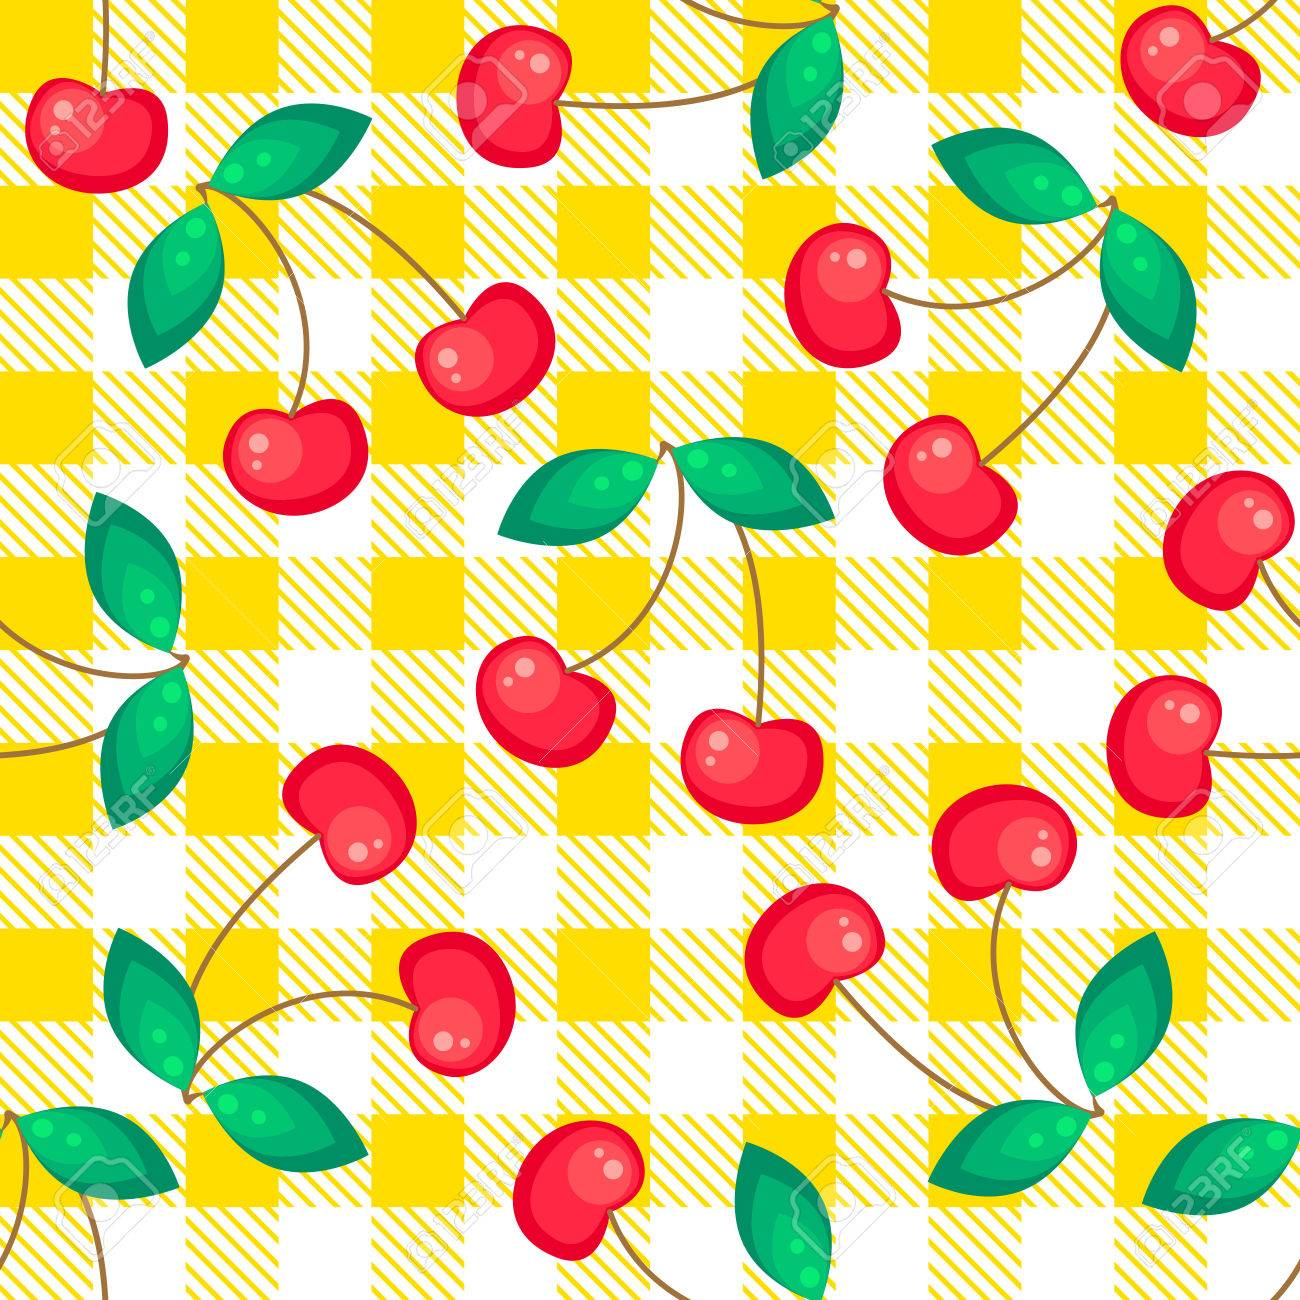 Tartan Plaid With Cherries Seamless Pattern. Kitchen Yellow Checkered  Tablecloth Fabric Background. Stock Vector